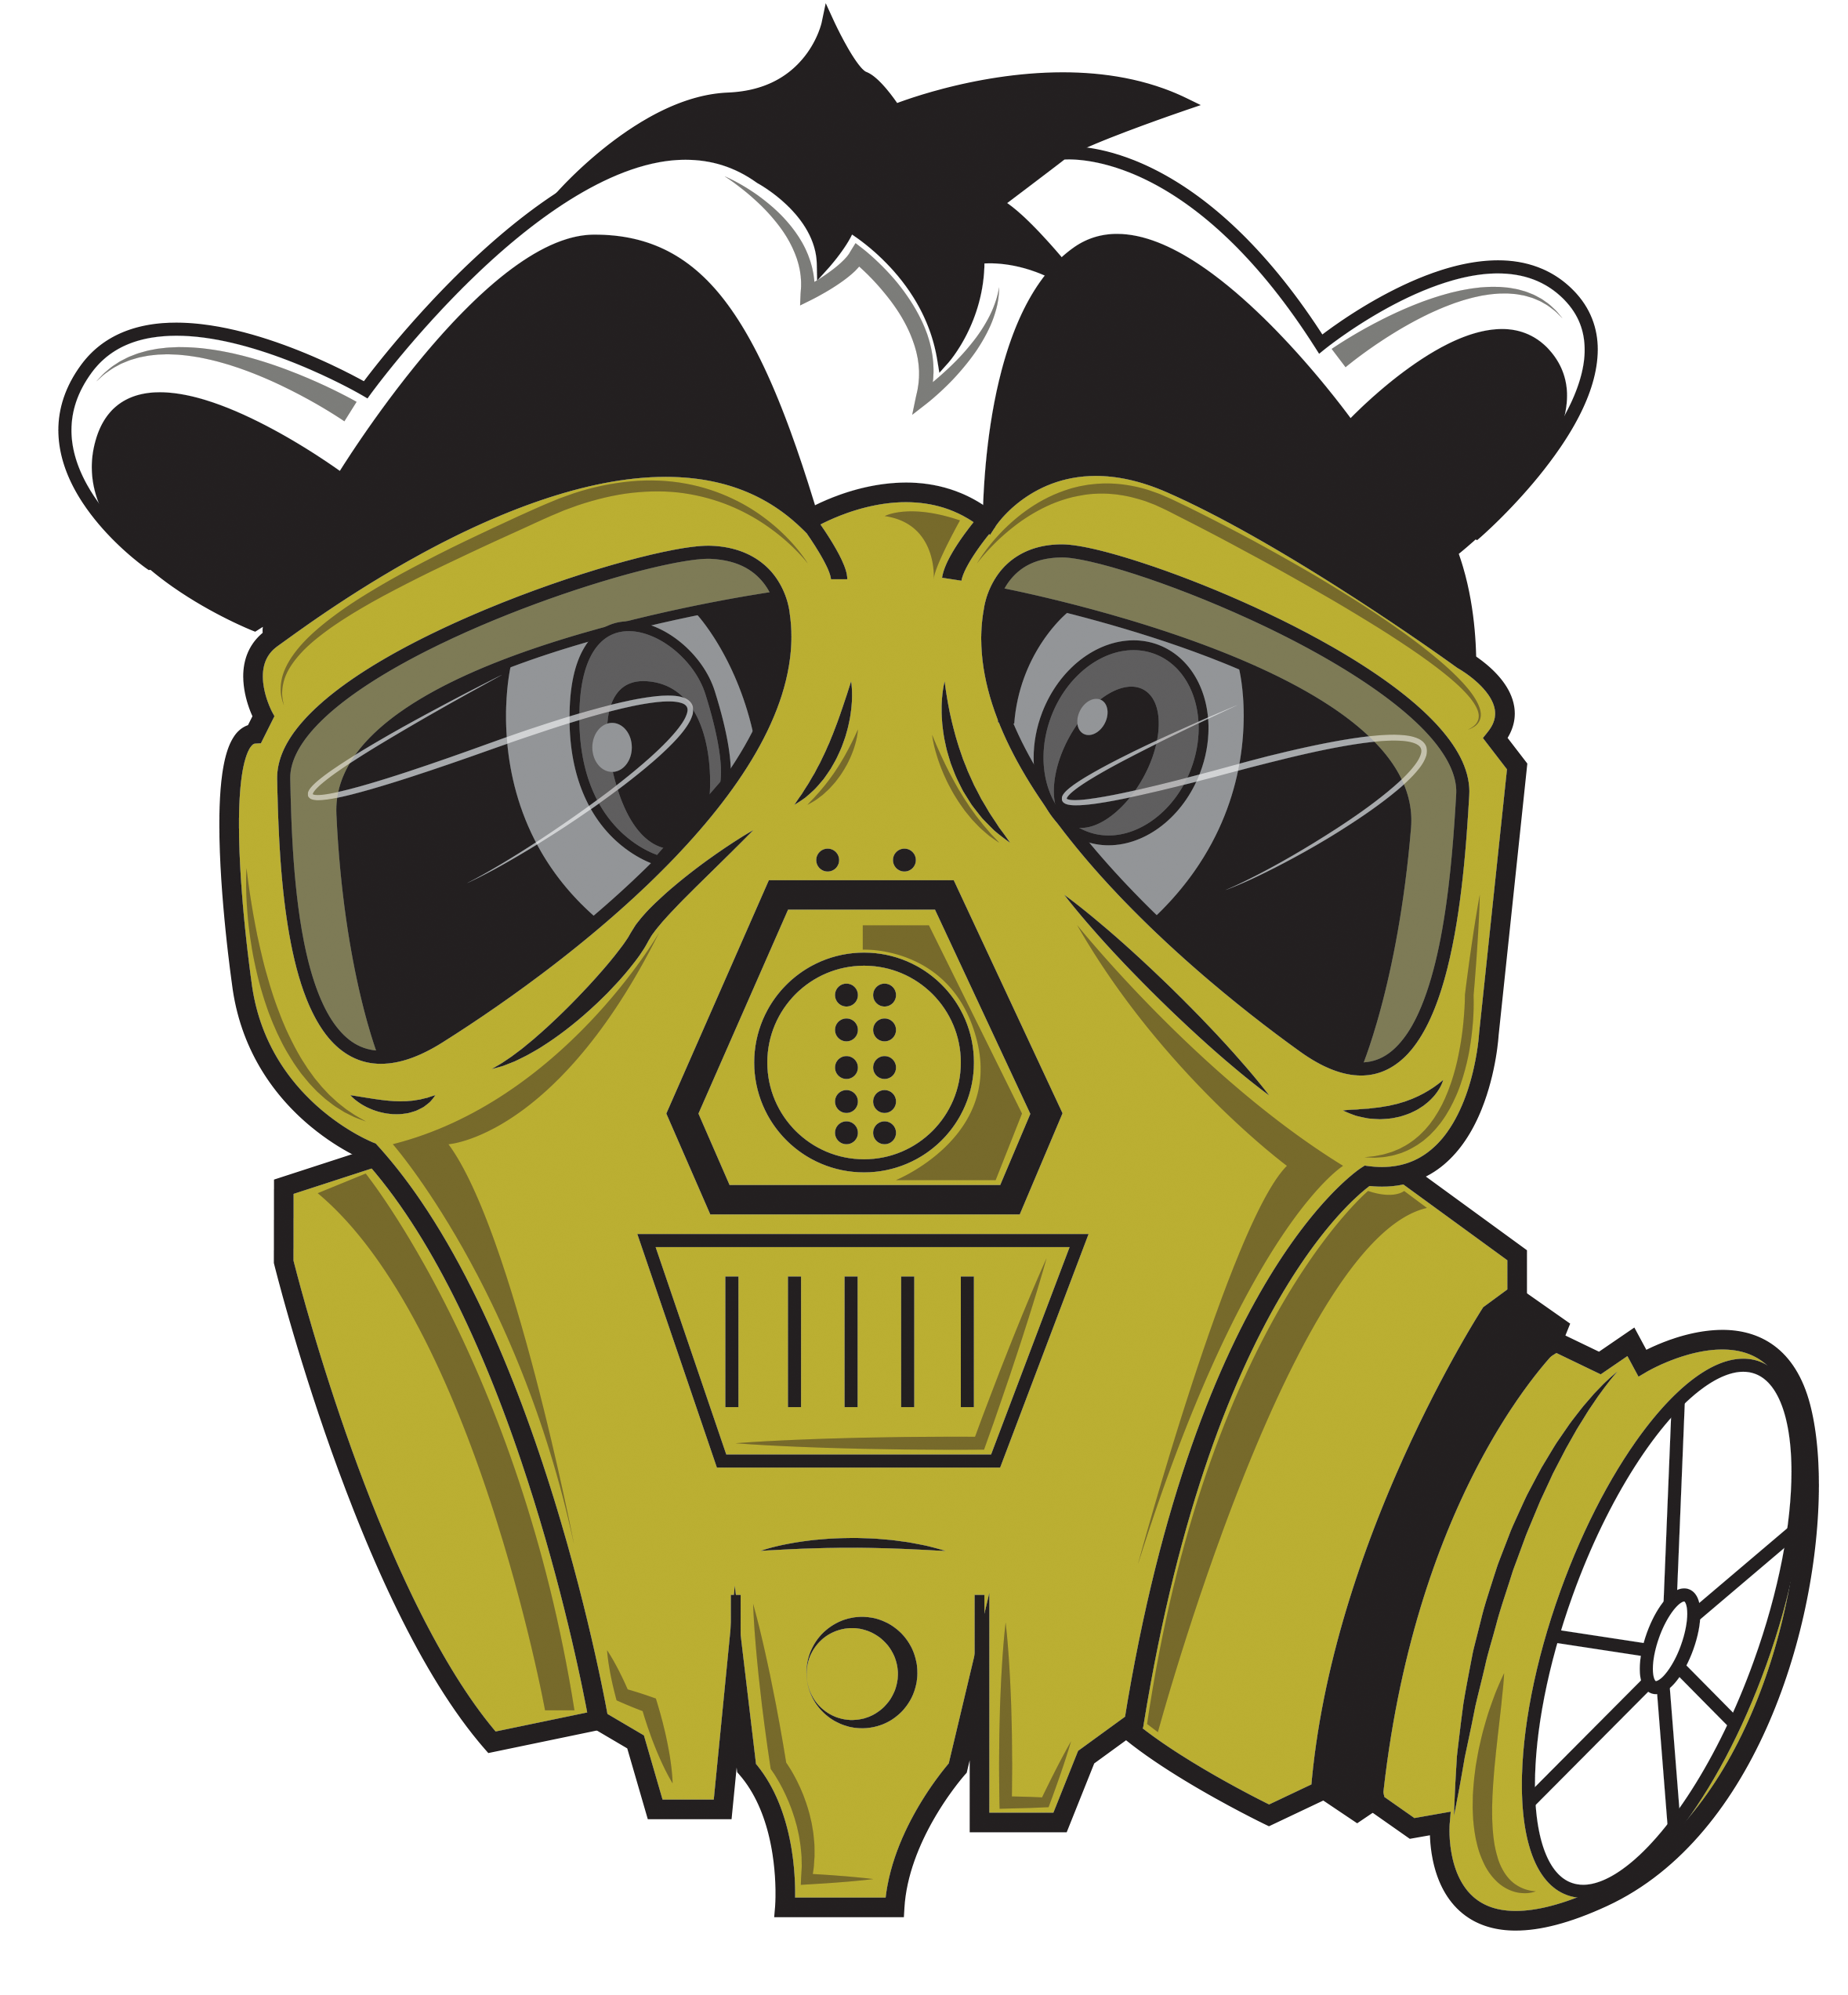 J drawing gas mask. Cools logo png images